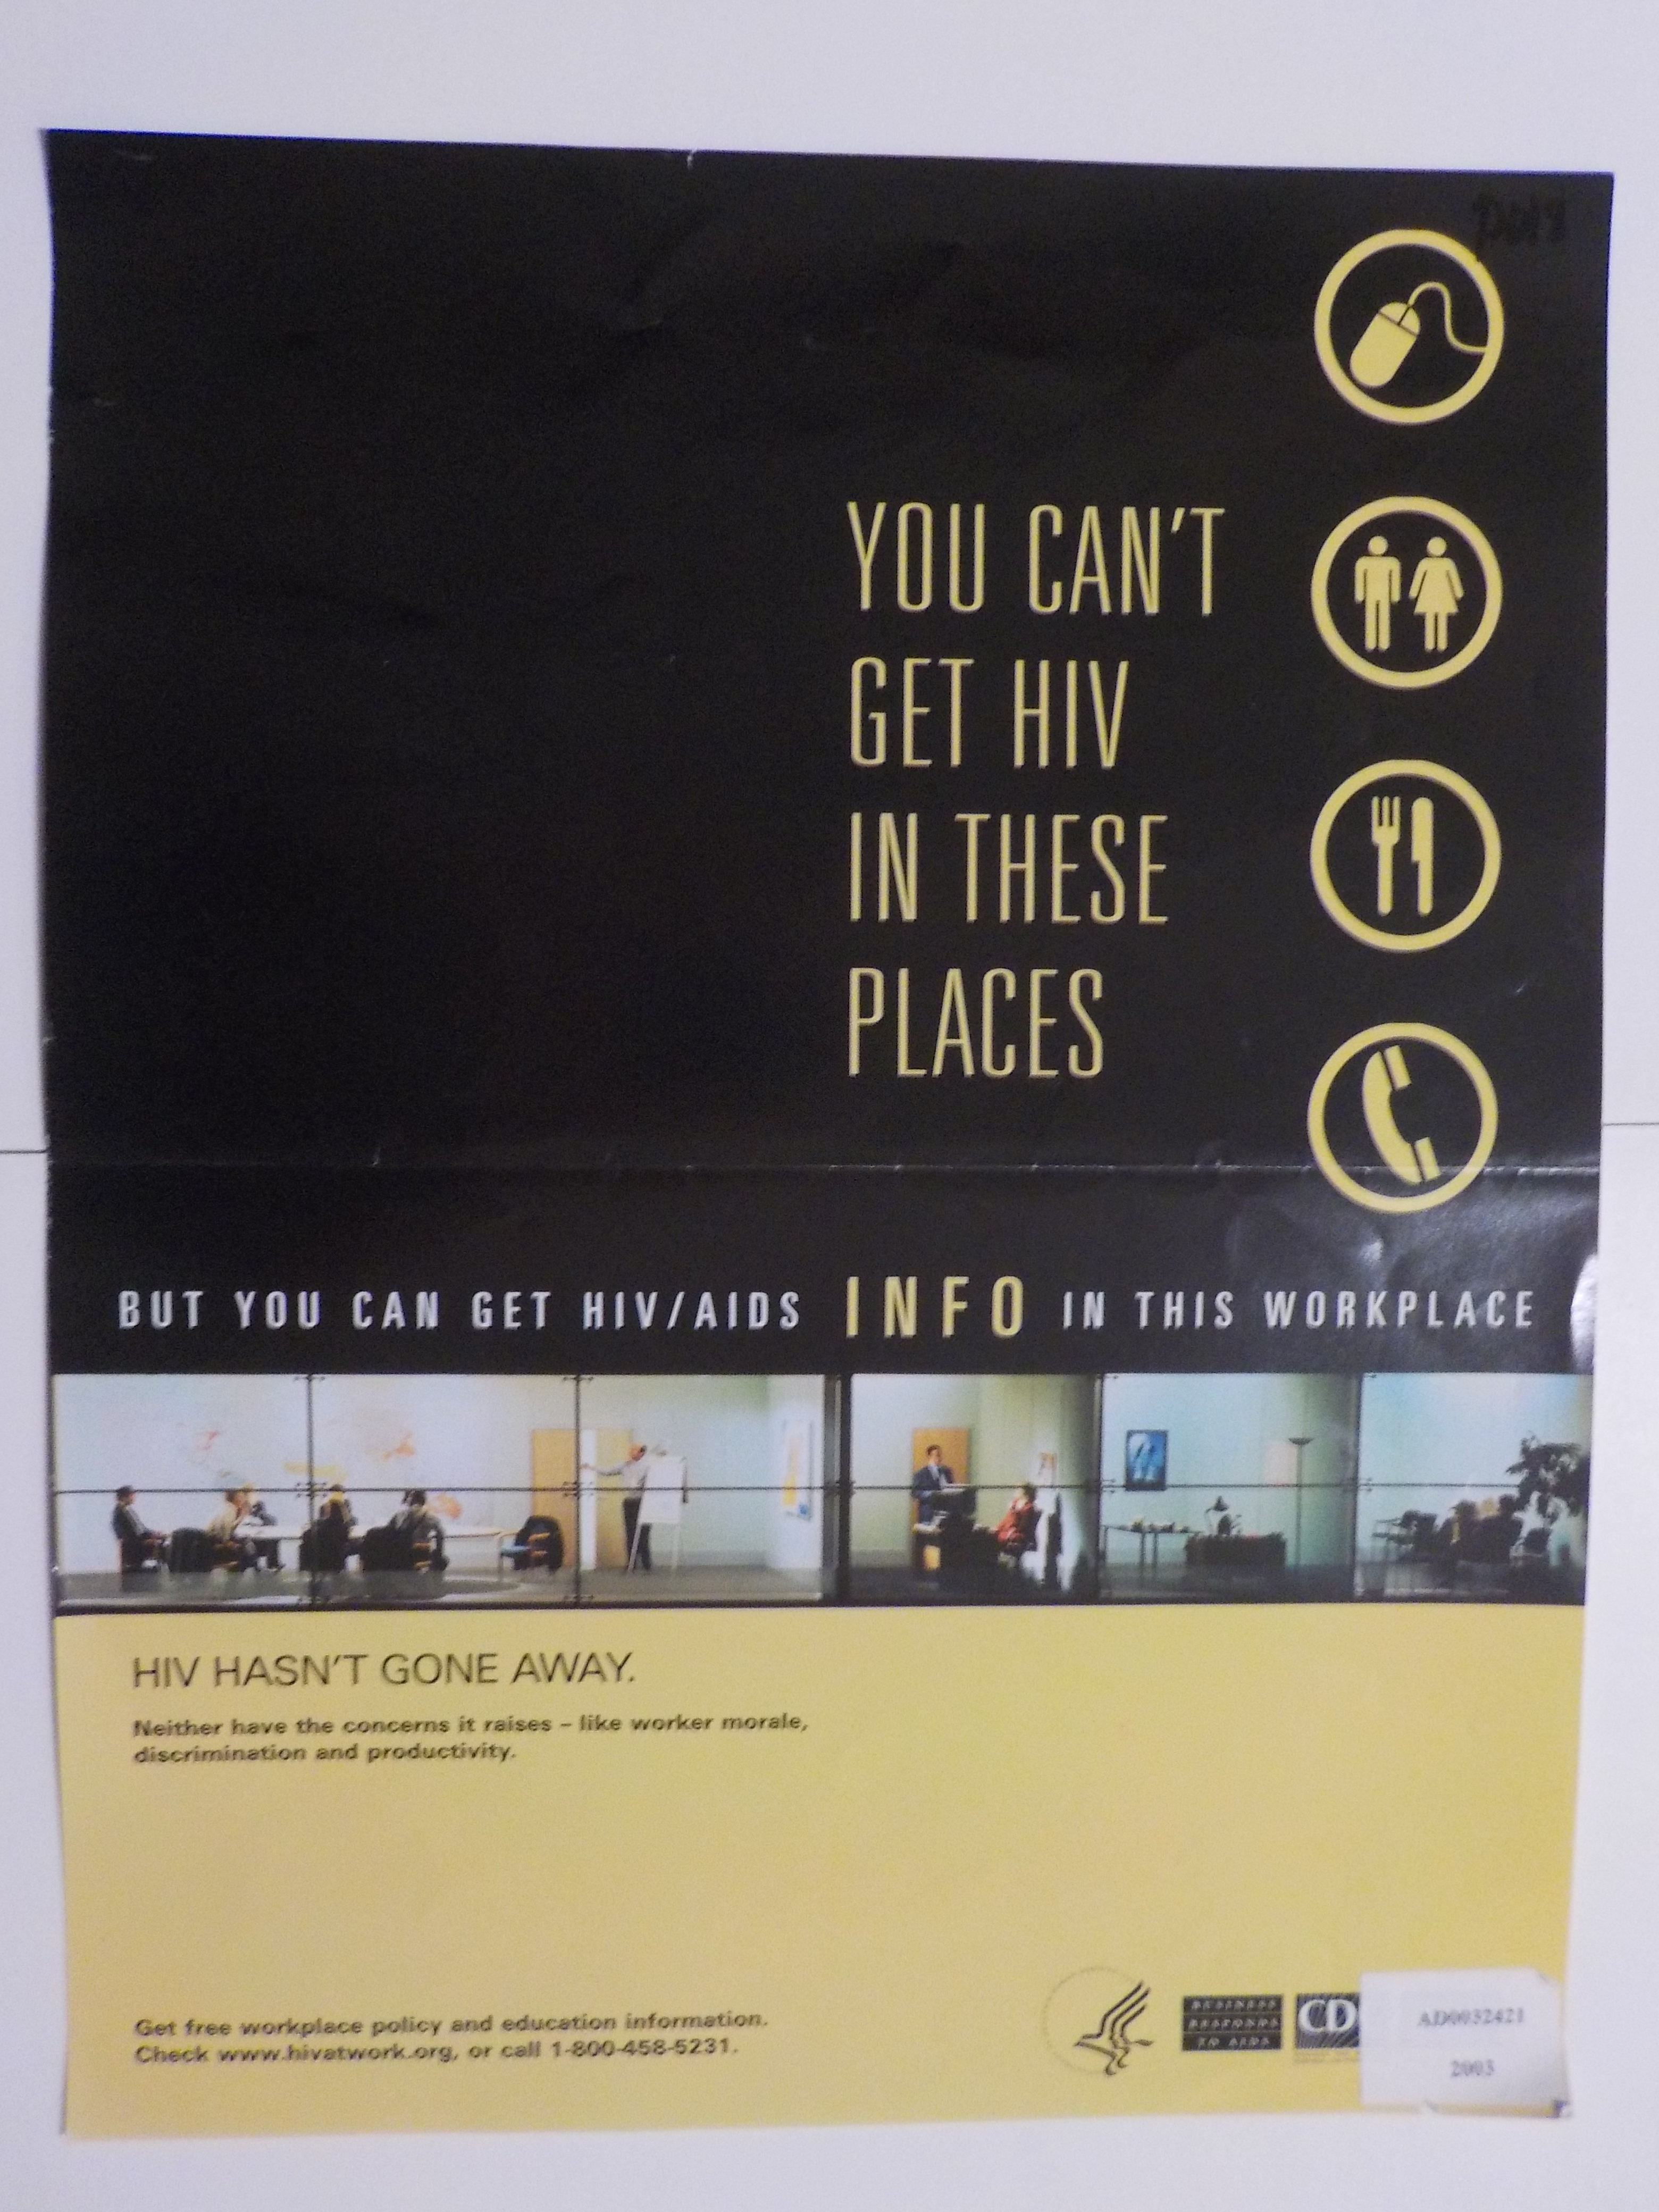 You can't get HIV in these places, but you can get HIV/AIDS info in this workplace